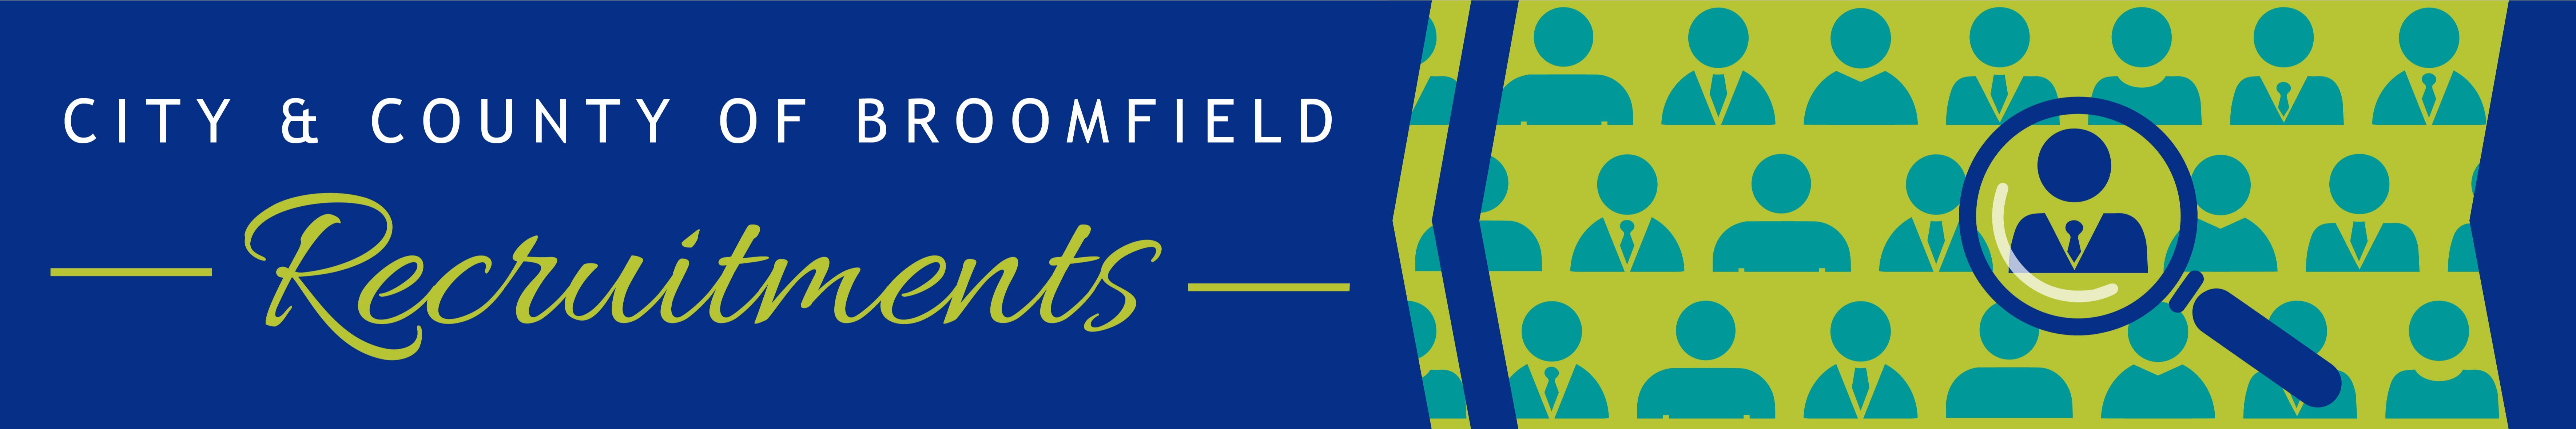 City and County of Broomfield Recruitment header banner image